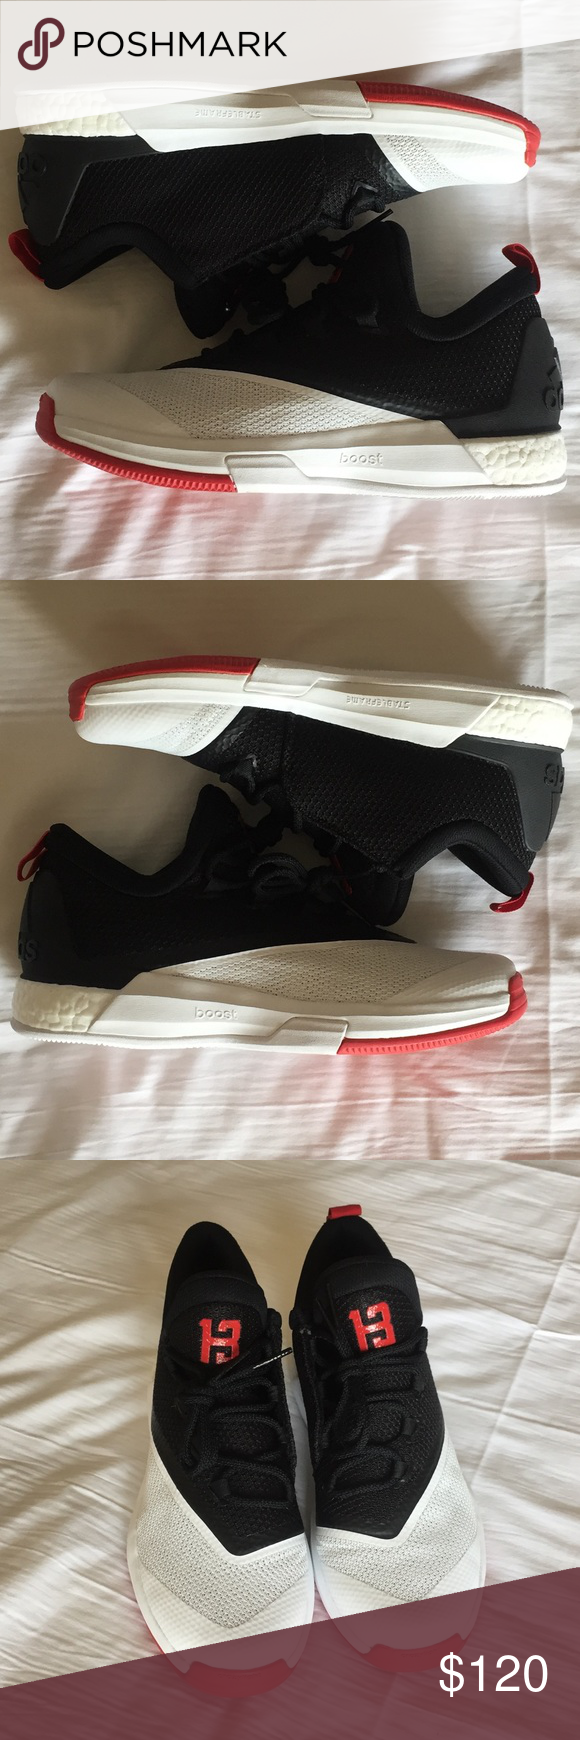 2e34855f903a Adidas James Harden Crazylight Boost 2.5 PE B42728 Selling a pair of Brand  New Adidas James